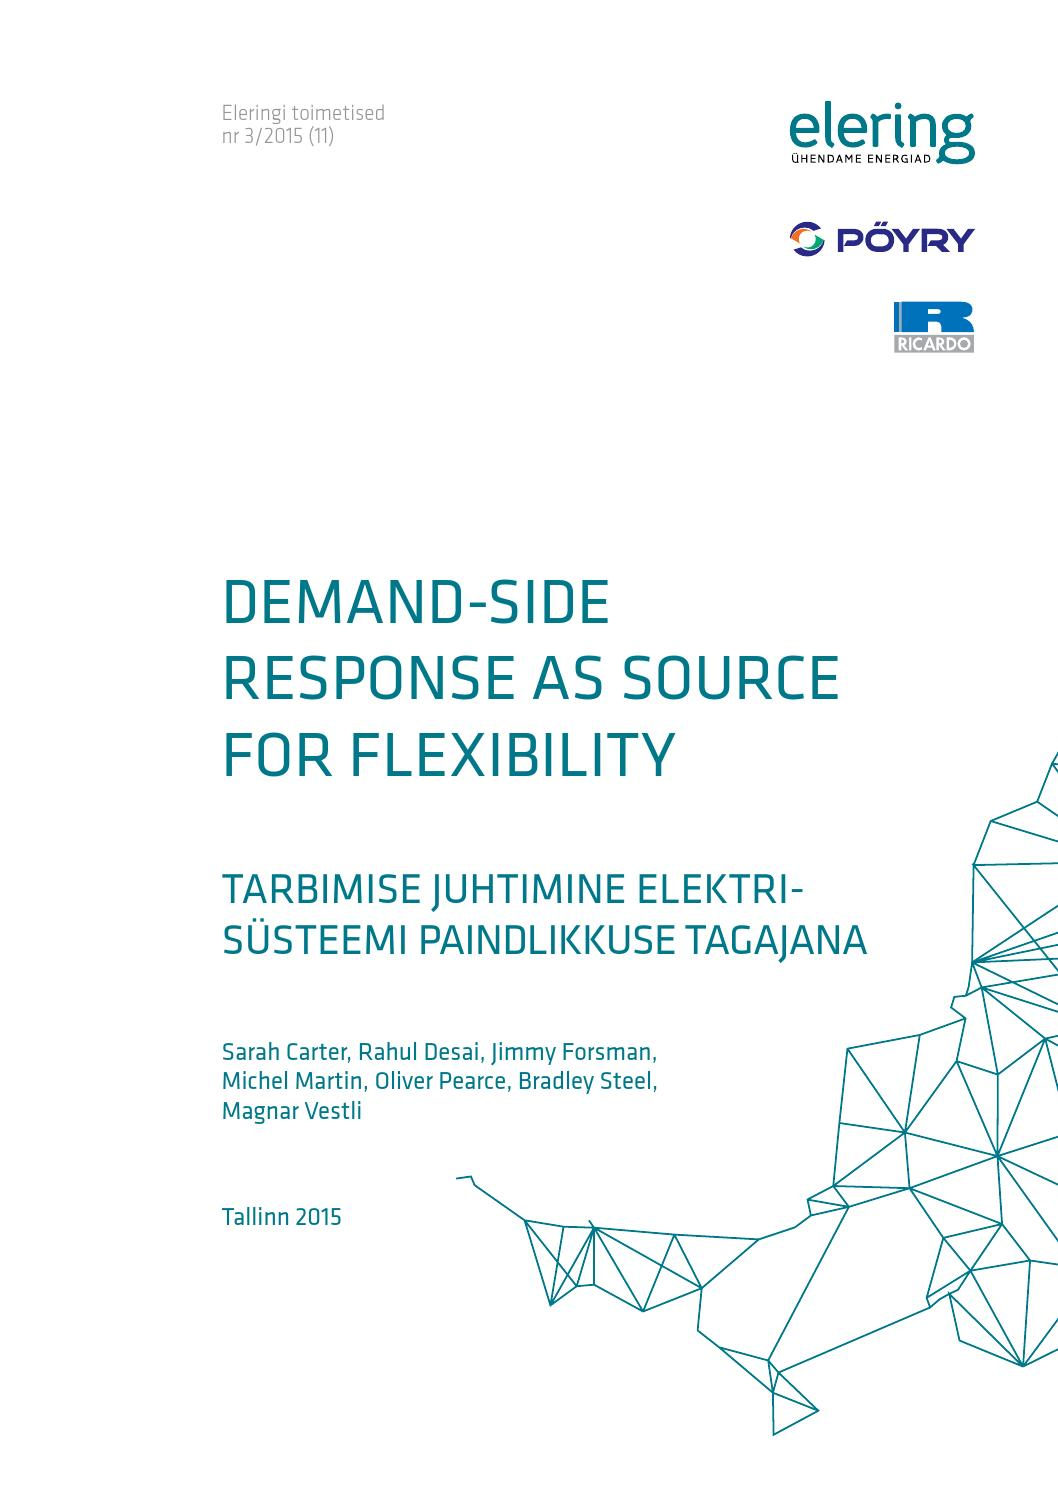 Demand side response as source for flexibility by Elering